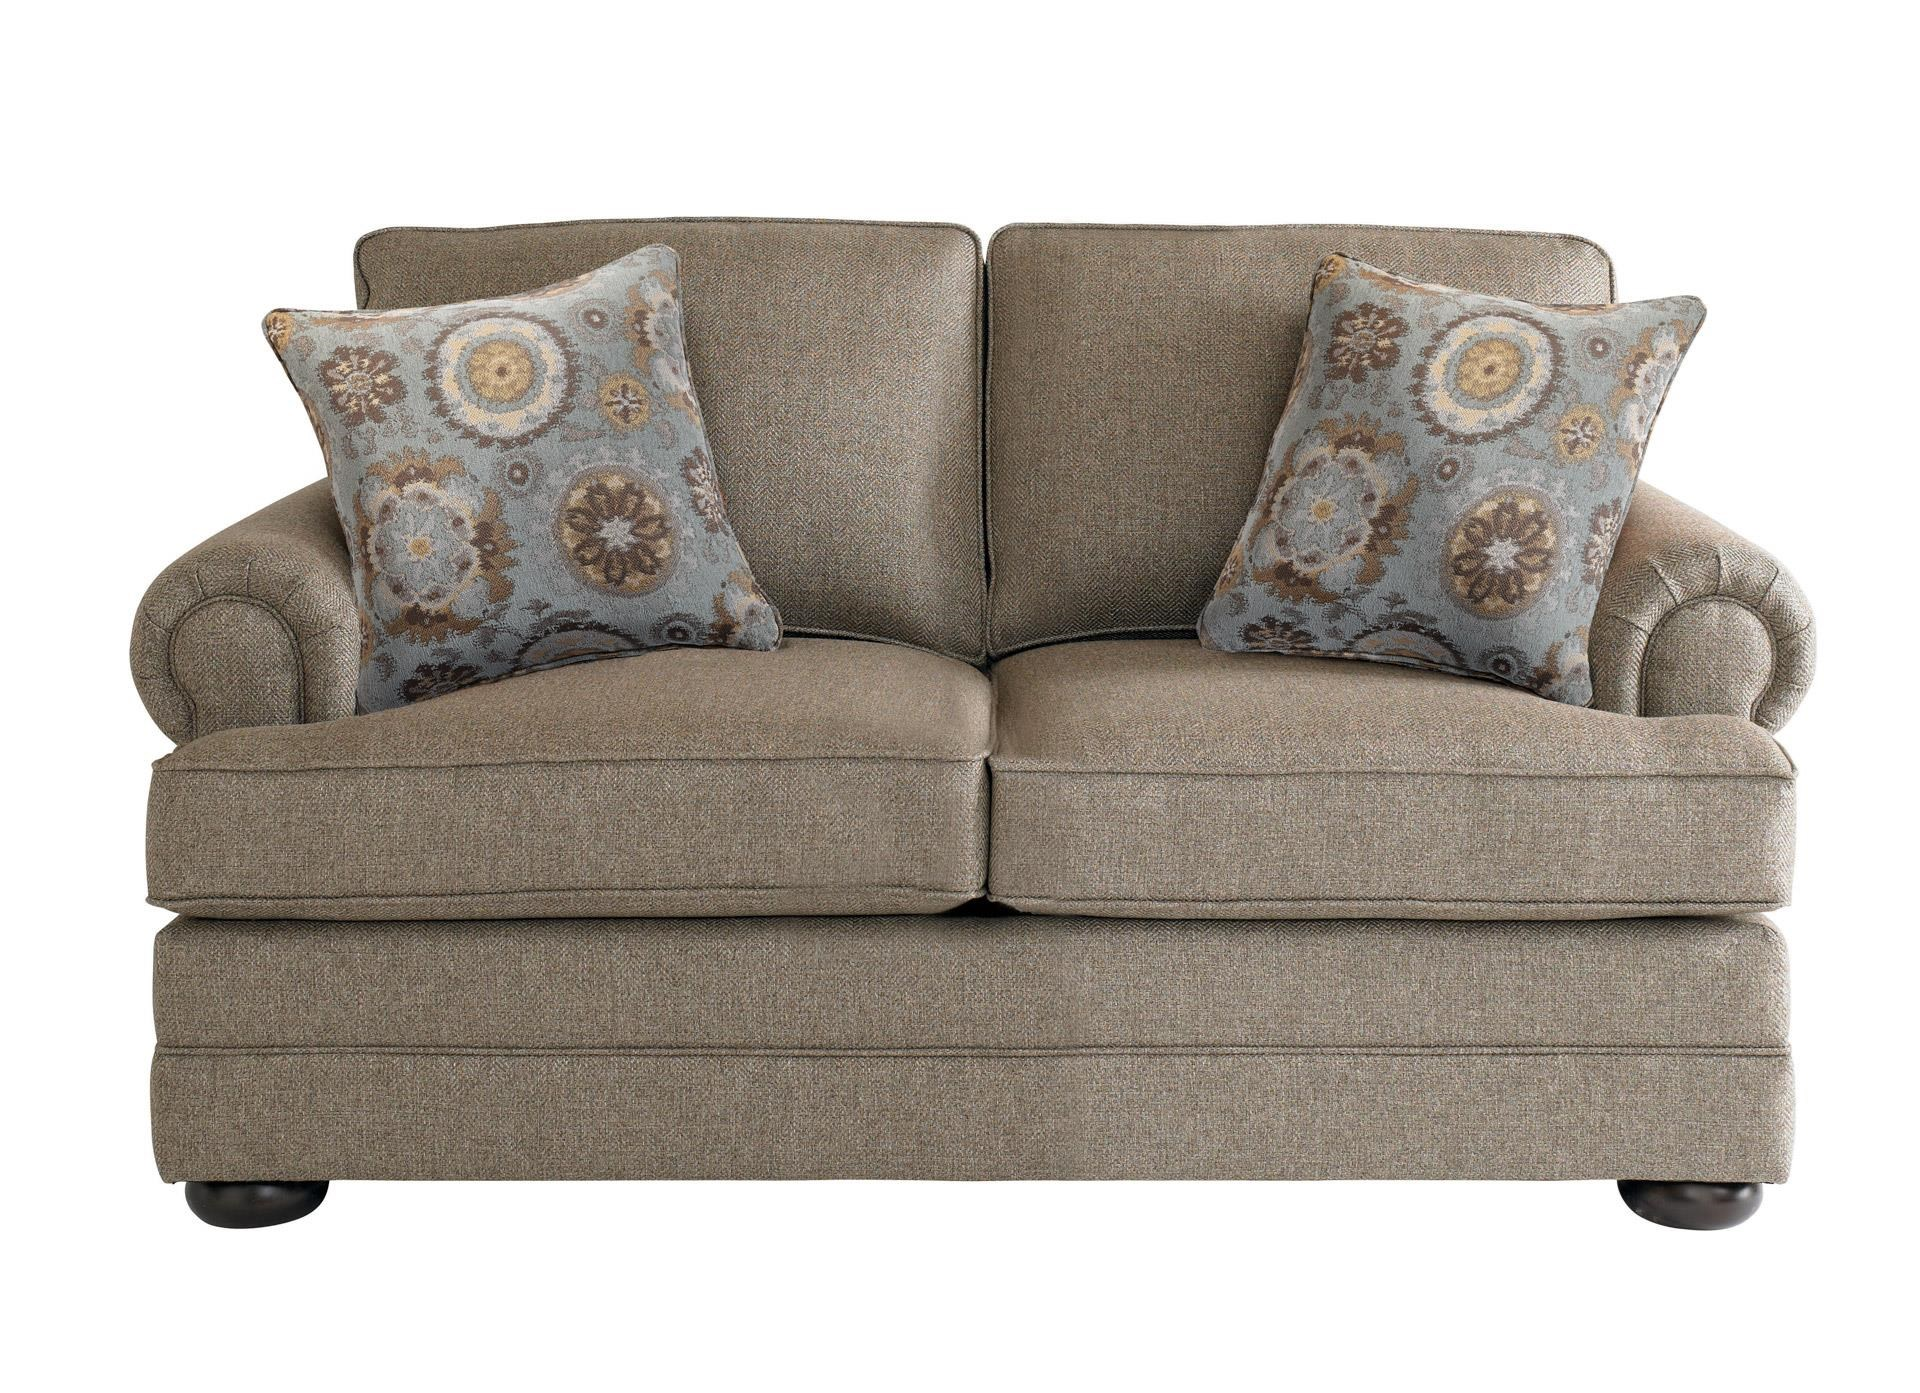 Bassett Hyde Park Loveseat - Item Number: 3913-42FC-1523-8-3350-5